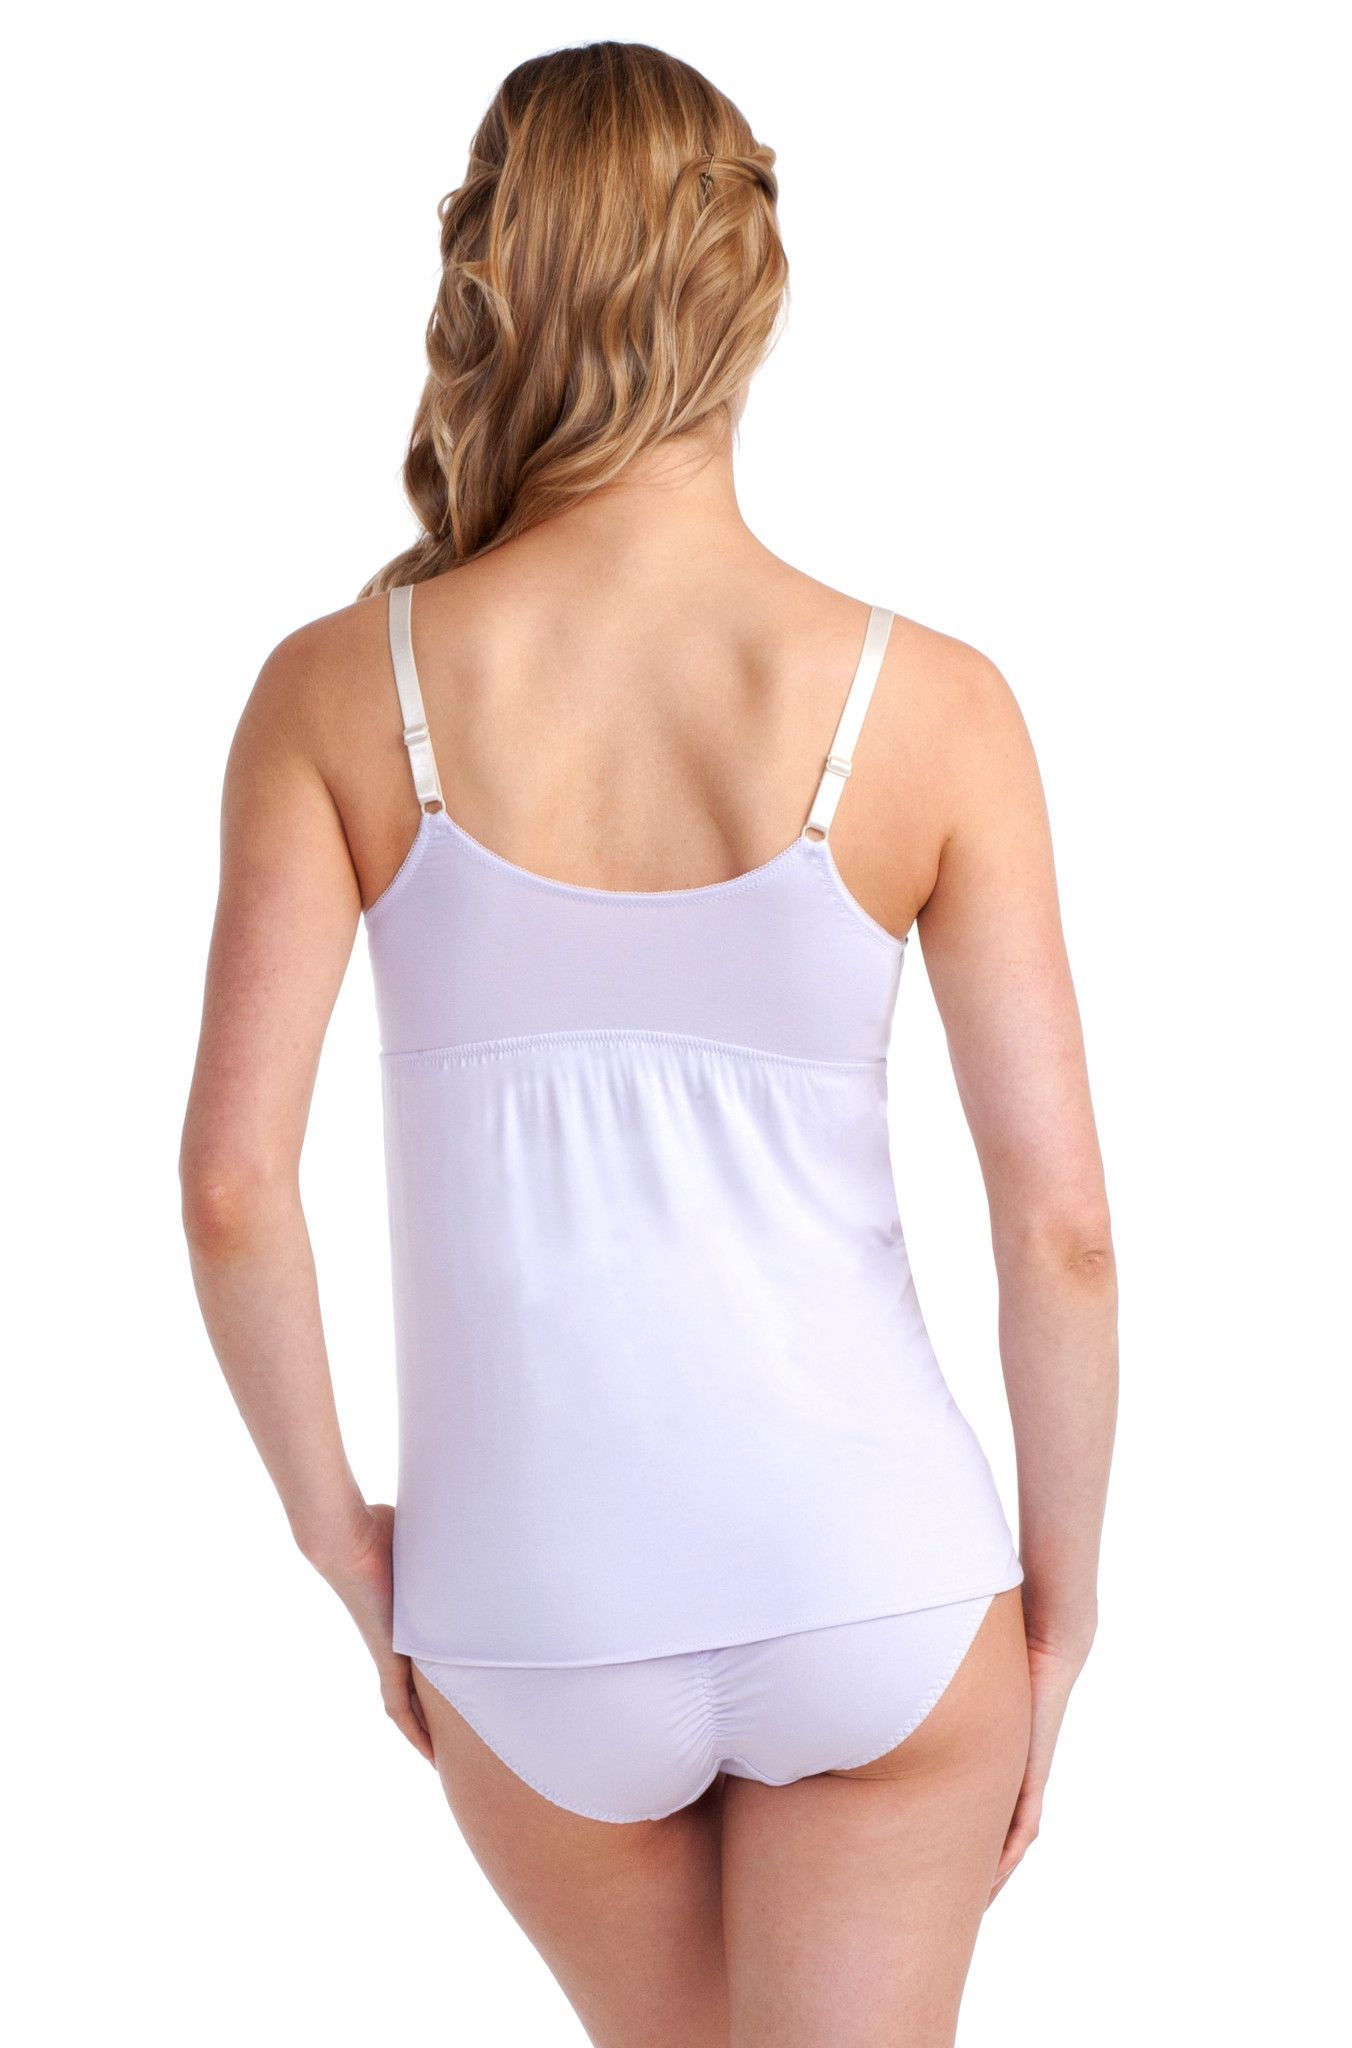 Maternity Constance Nursing Camisole